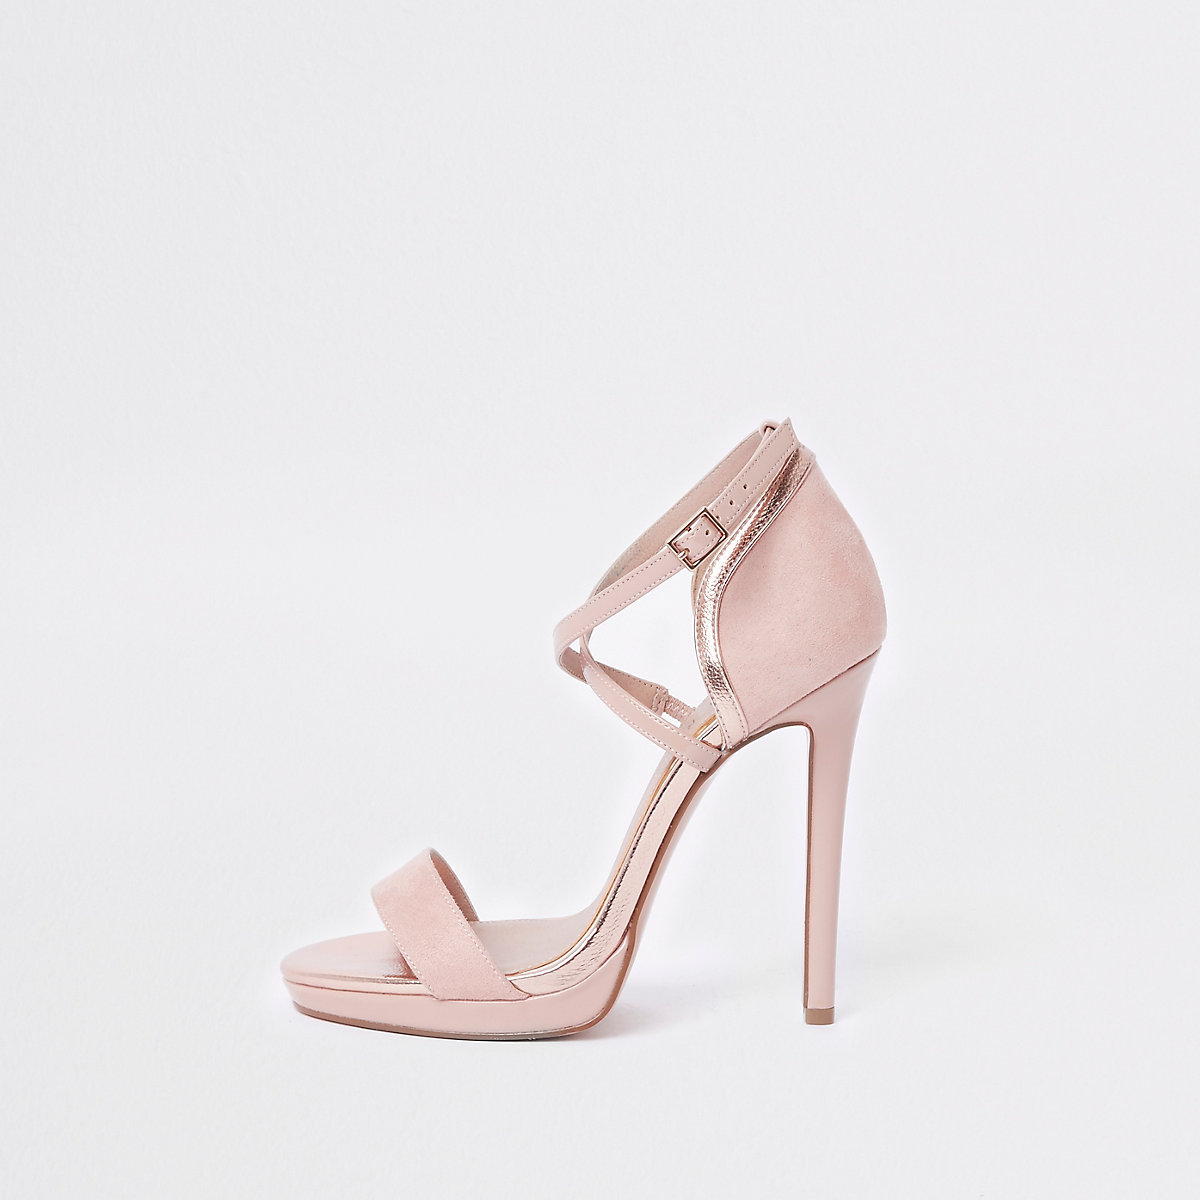 Pink barely there platform sandals